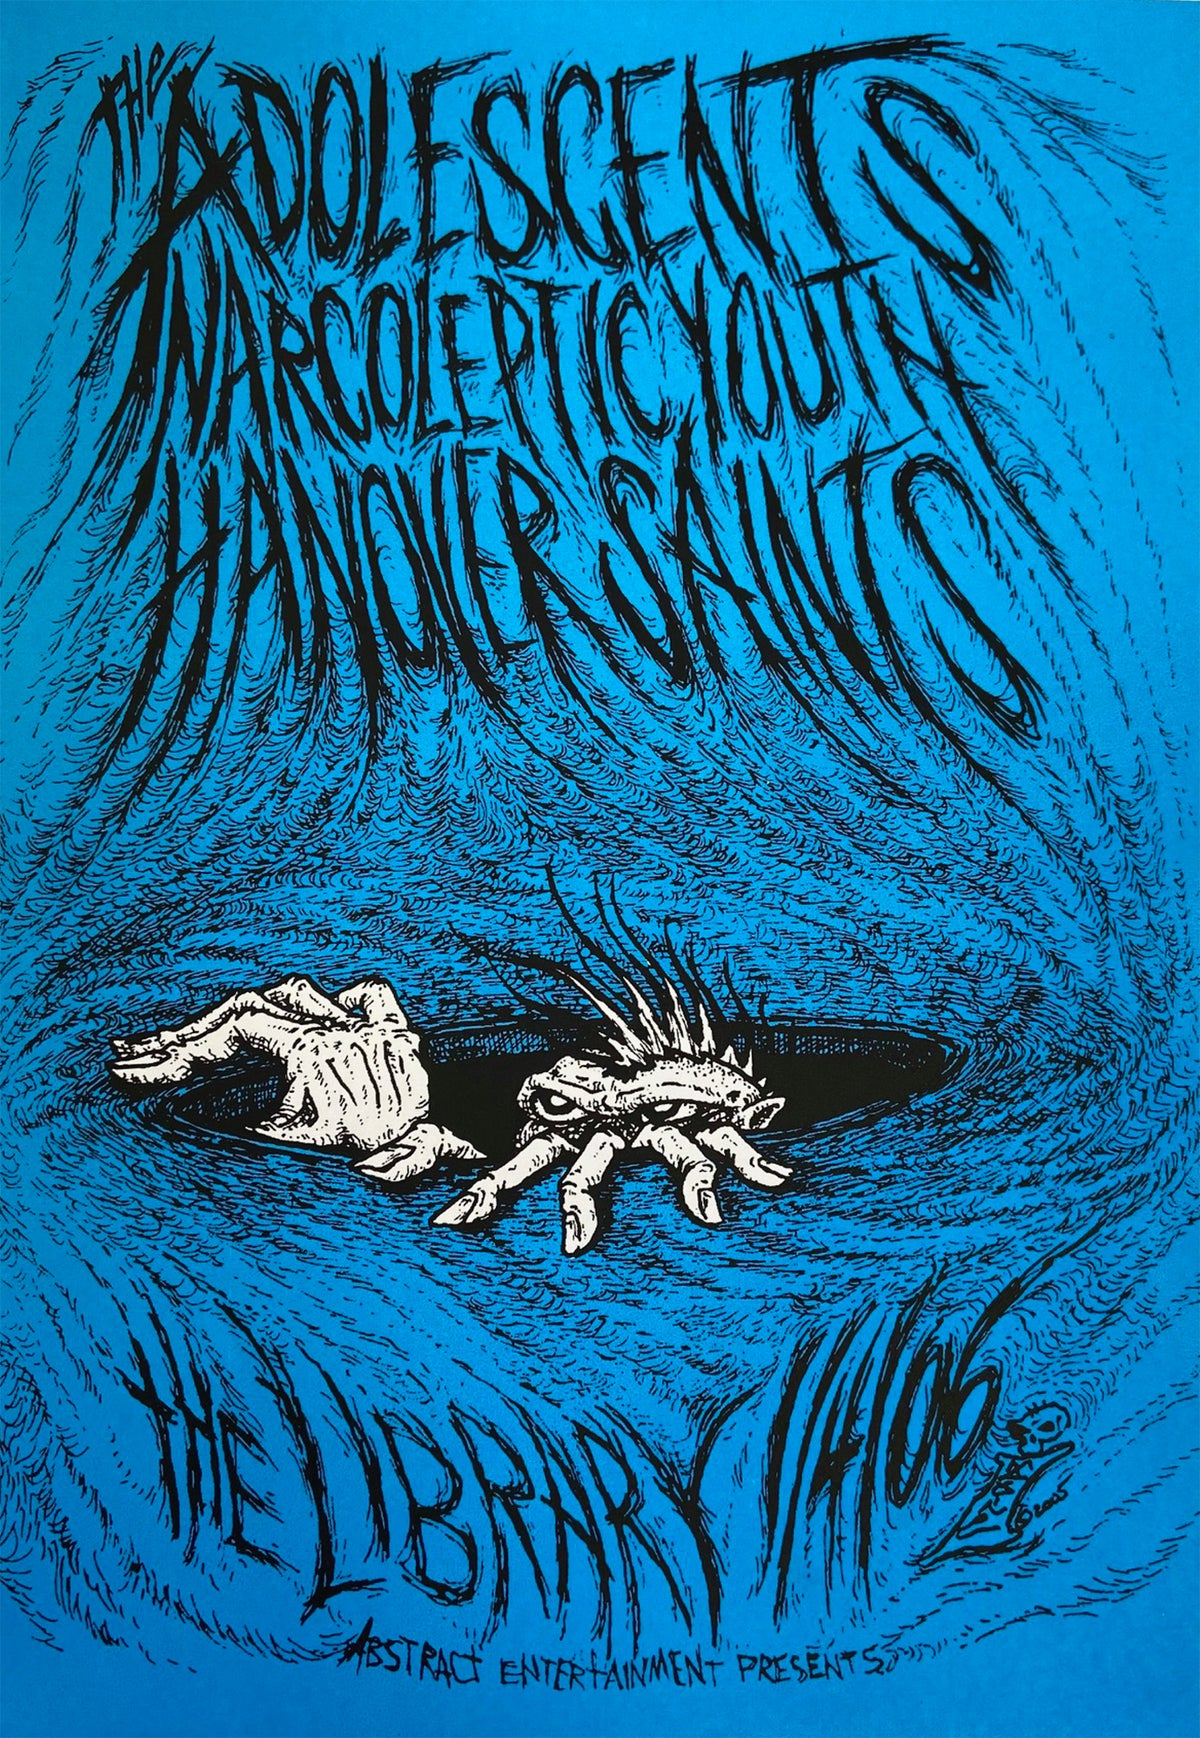 Image of Adolescents, Narcoleptic Youth, Hanover Saints 2006 Poster